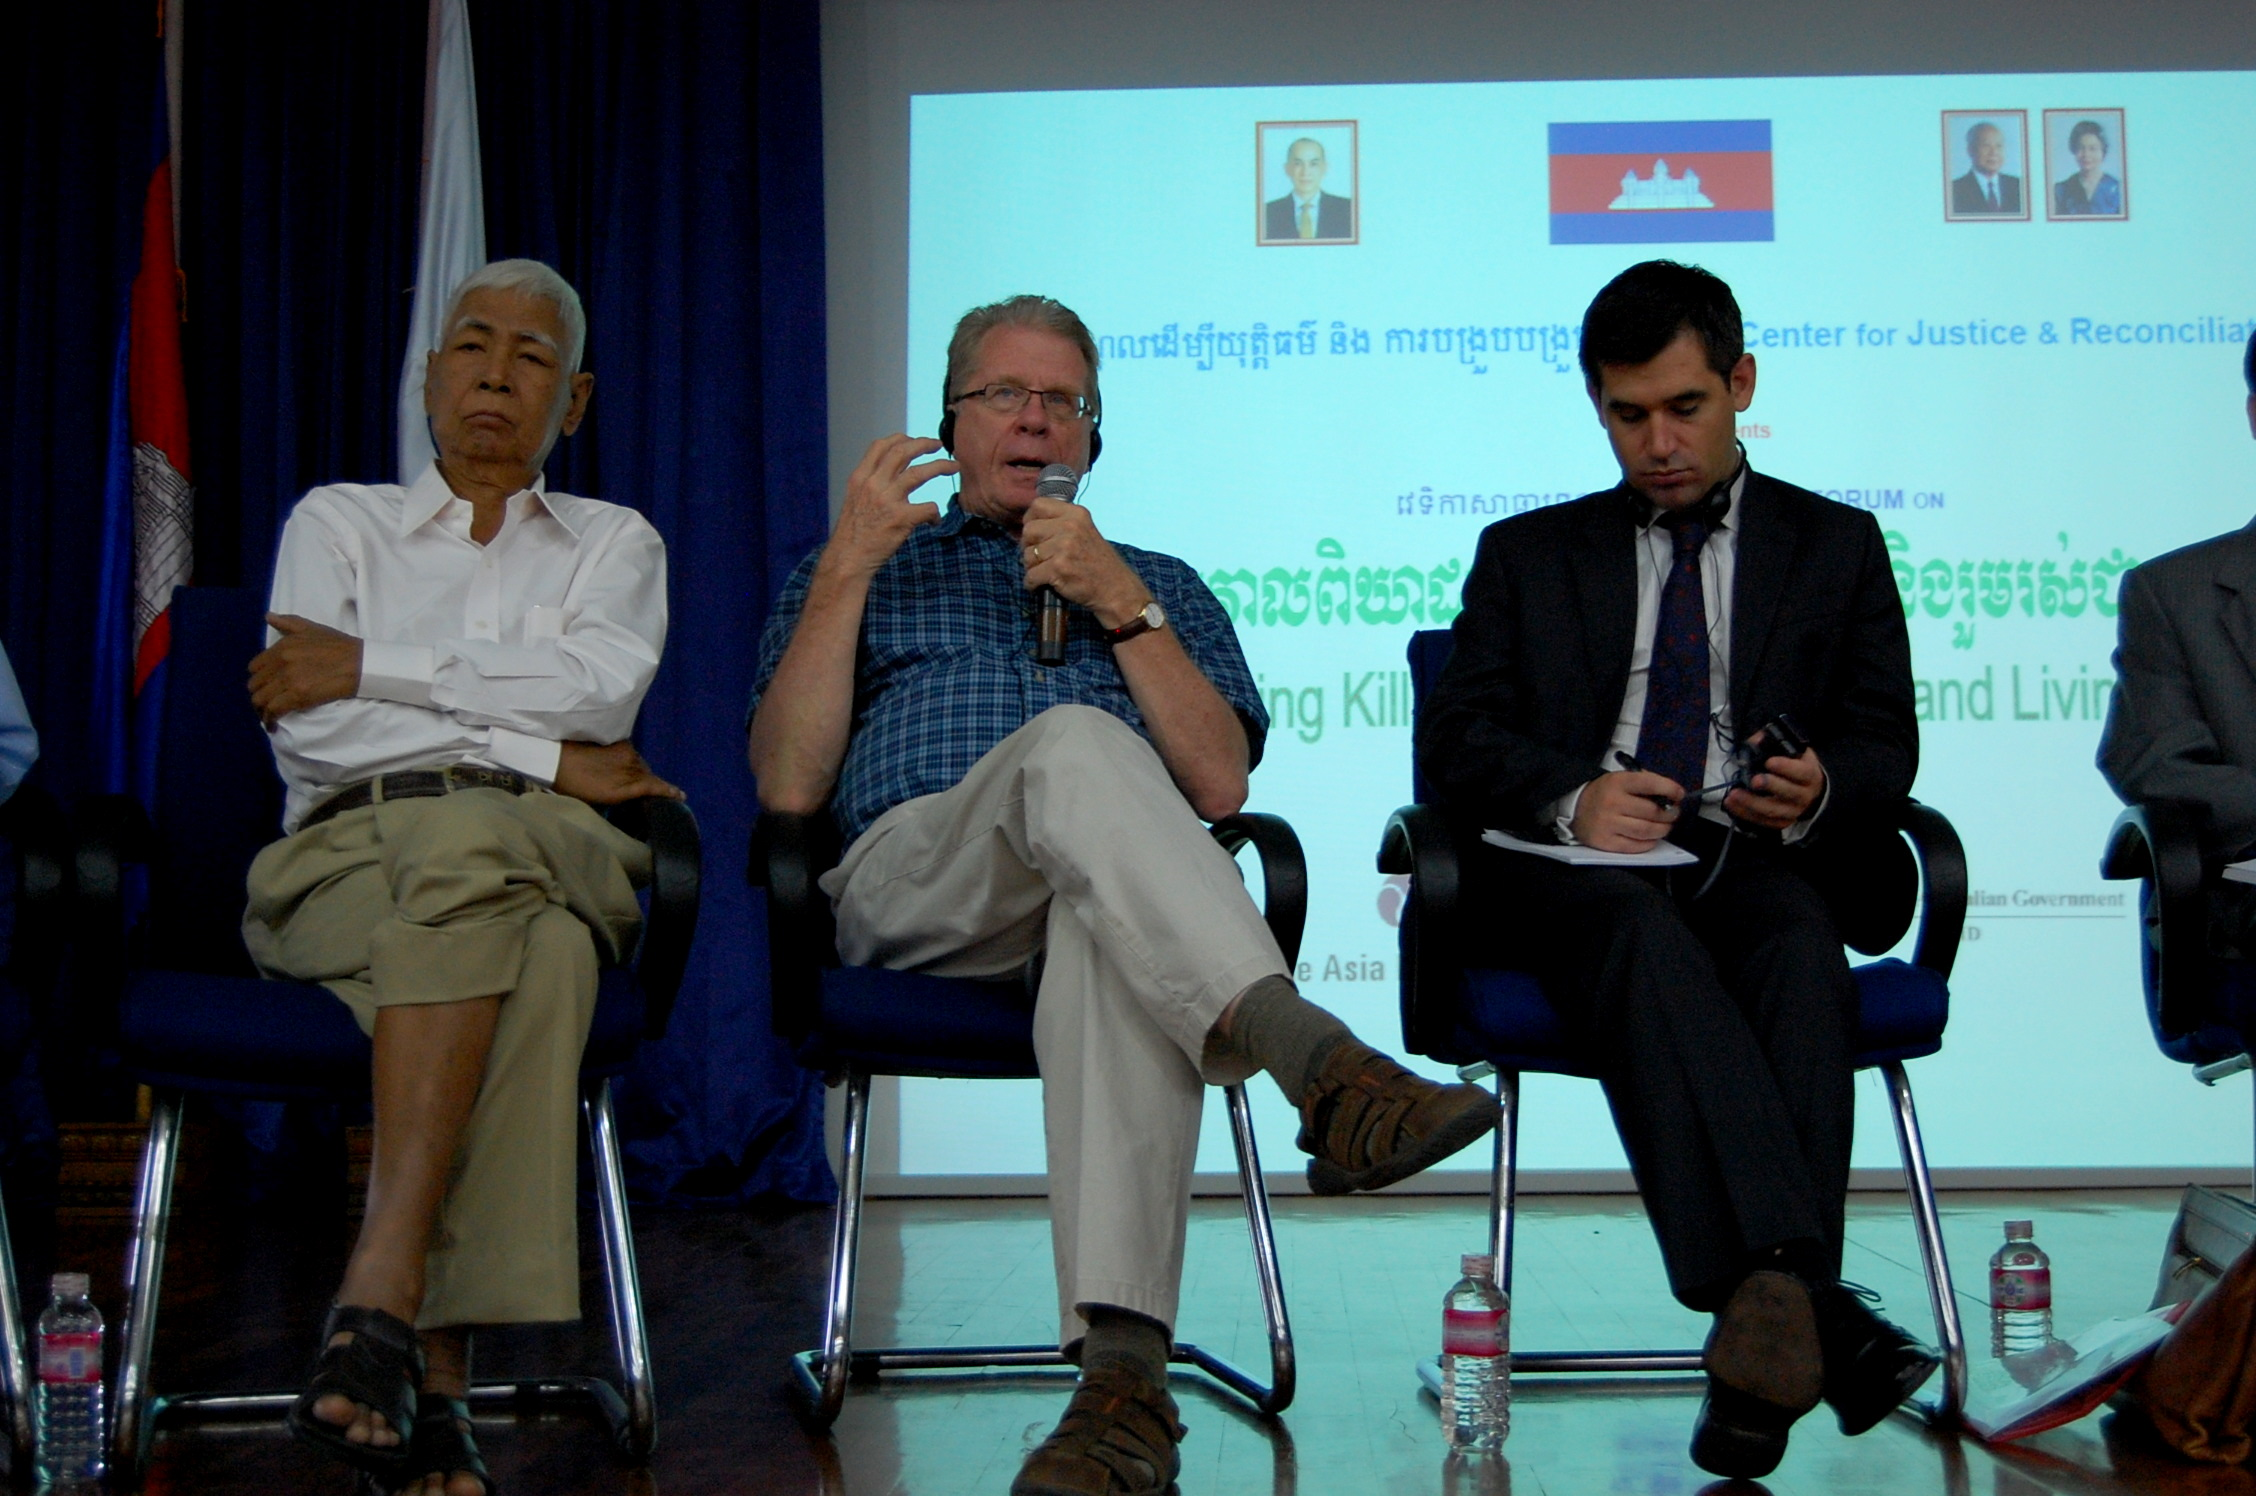 Van Nath, David Chandler, Andrew Mace at Center for Justice & Reconciliation public forum